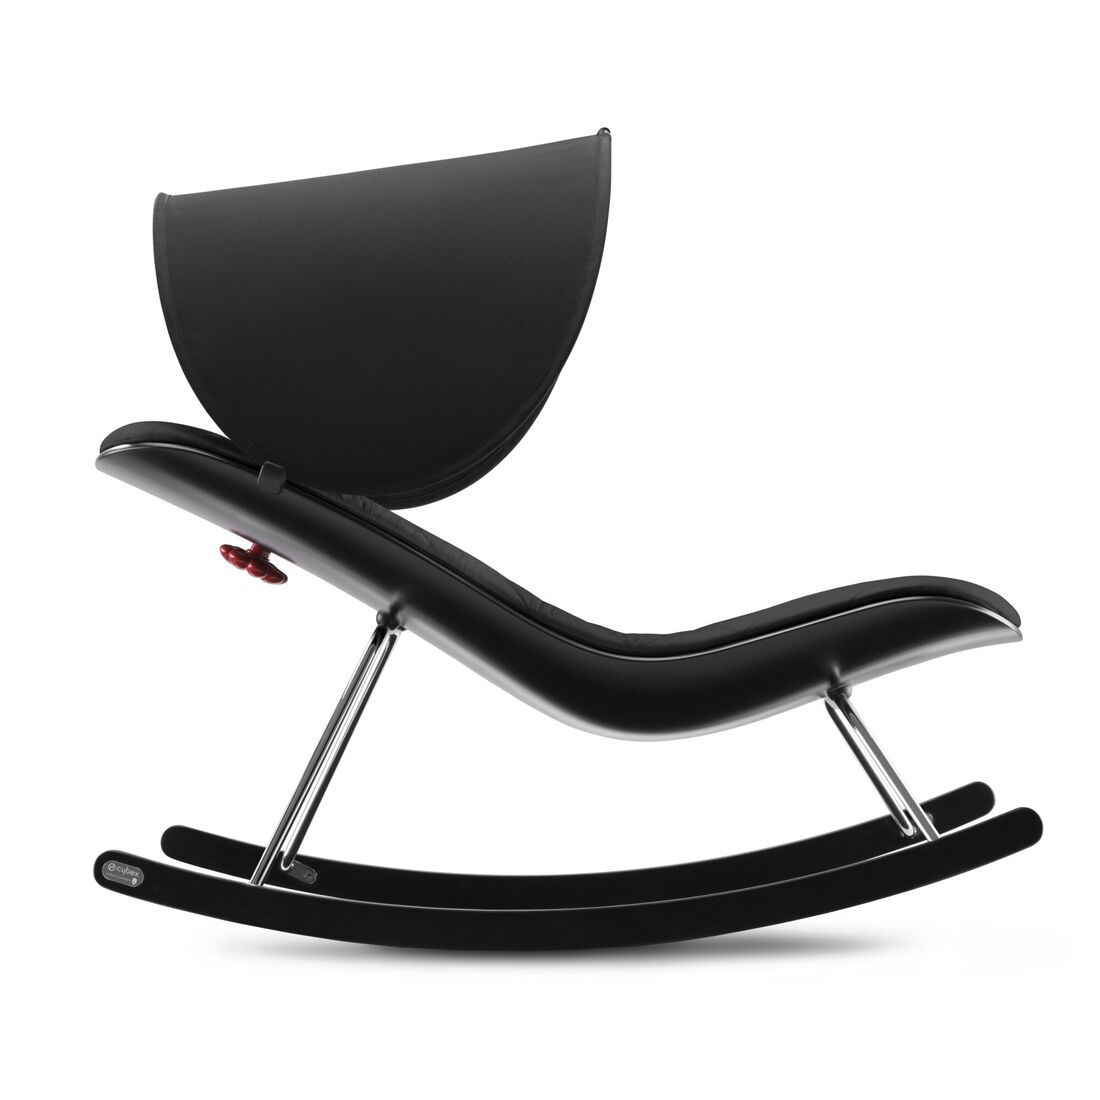 CYBEX Wanders Canopy - Black in Black large image number 3